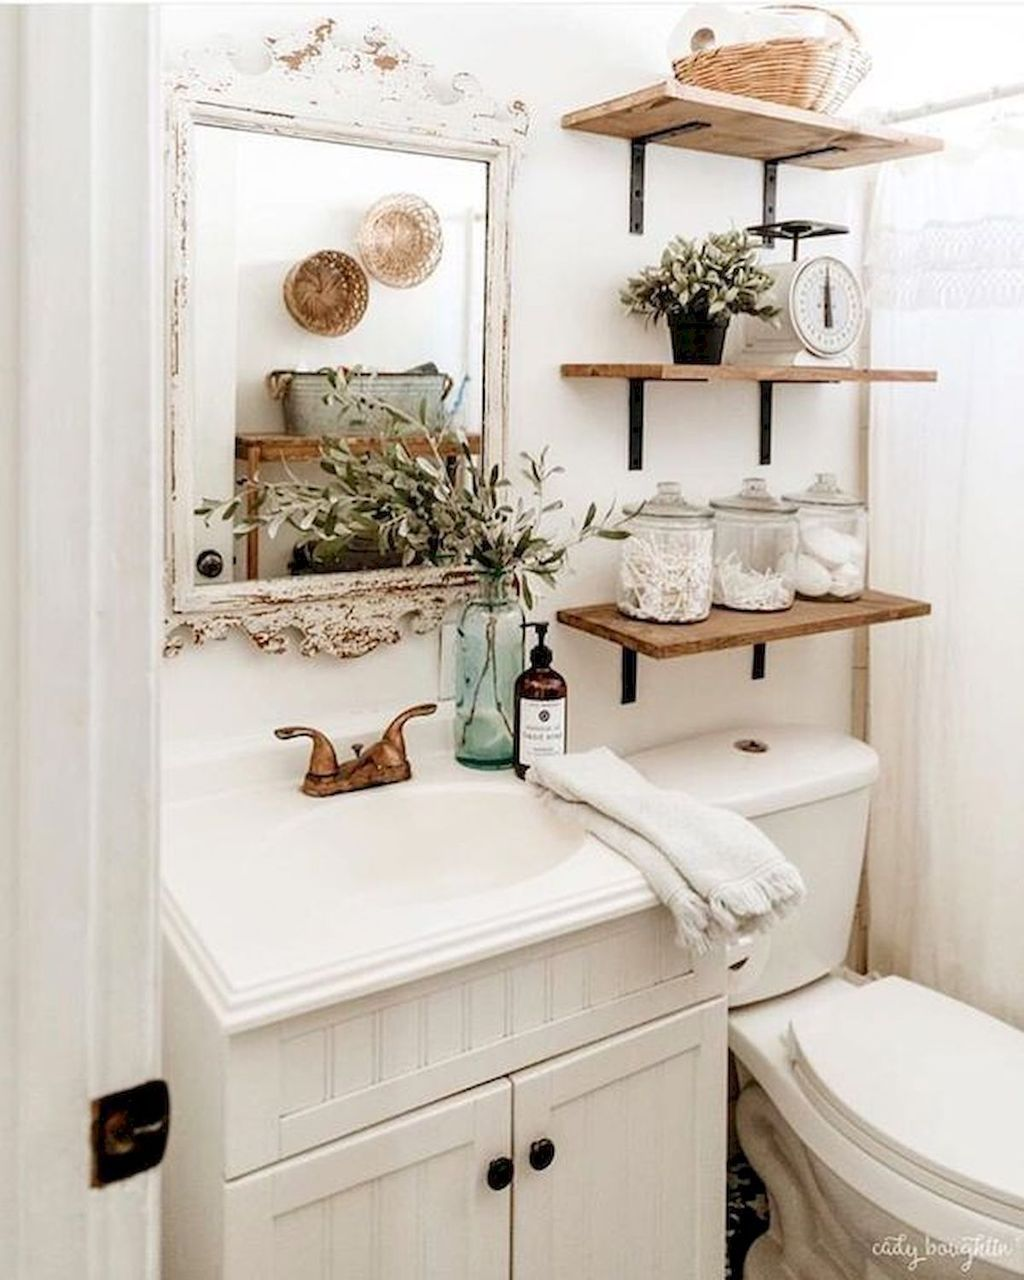 Amazing Bathroom Storage Design Ideas For Small Space 14